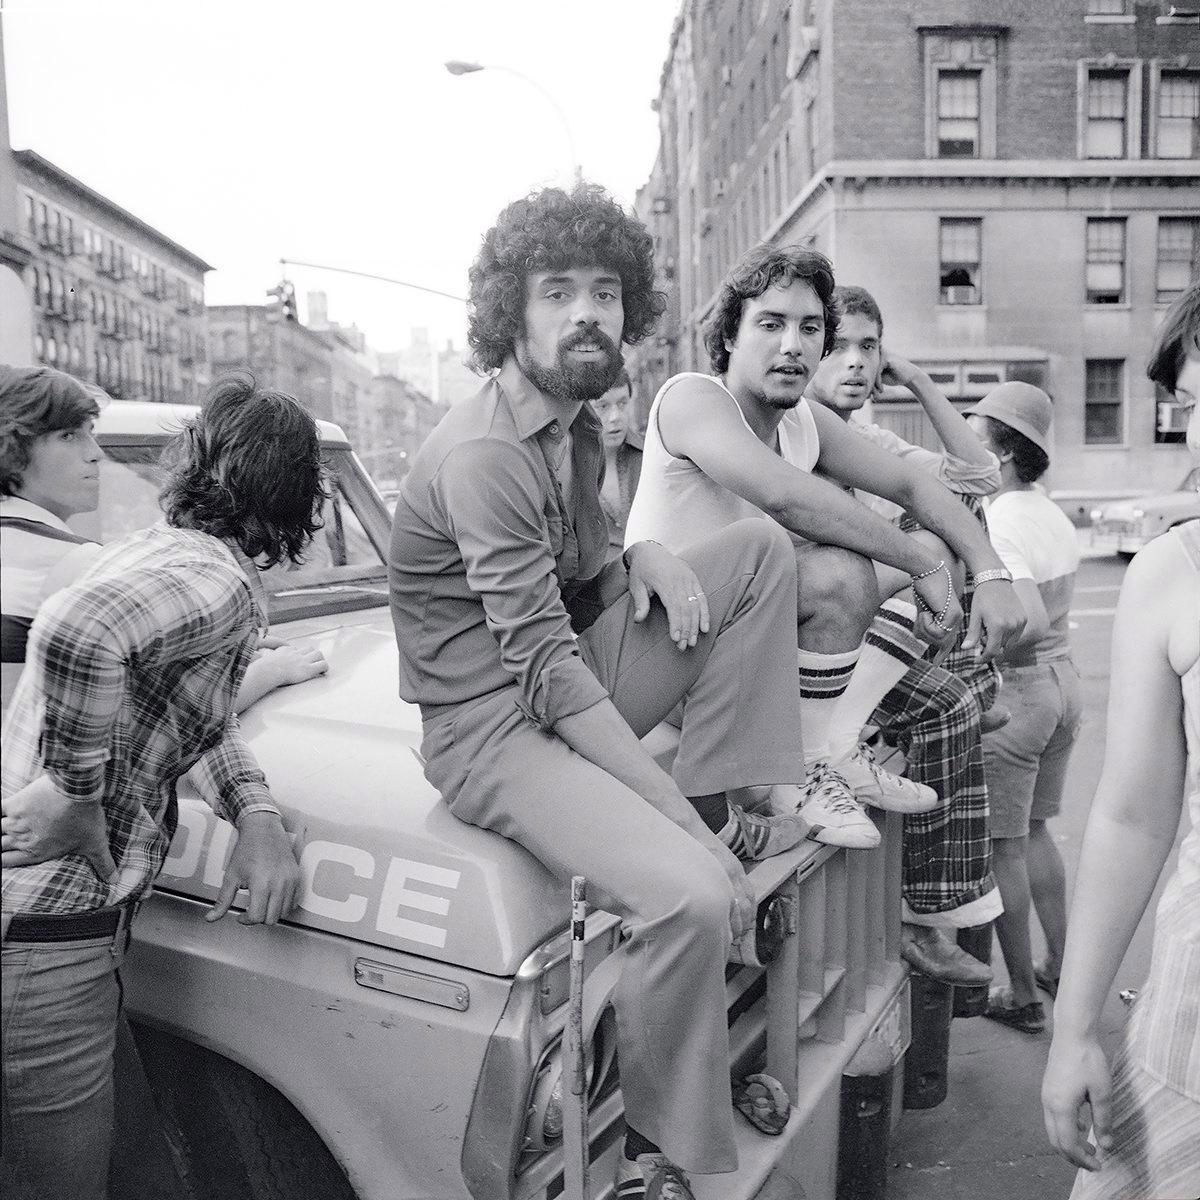 During the New York City blackout of 1977, Meryl Meisler captured this photo of a group of guys hanging out on the hood of a police car in New York City on July 13, 1977.